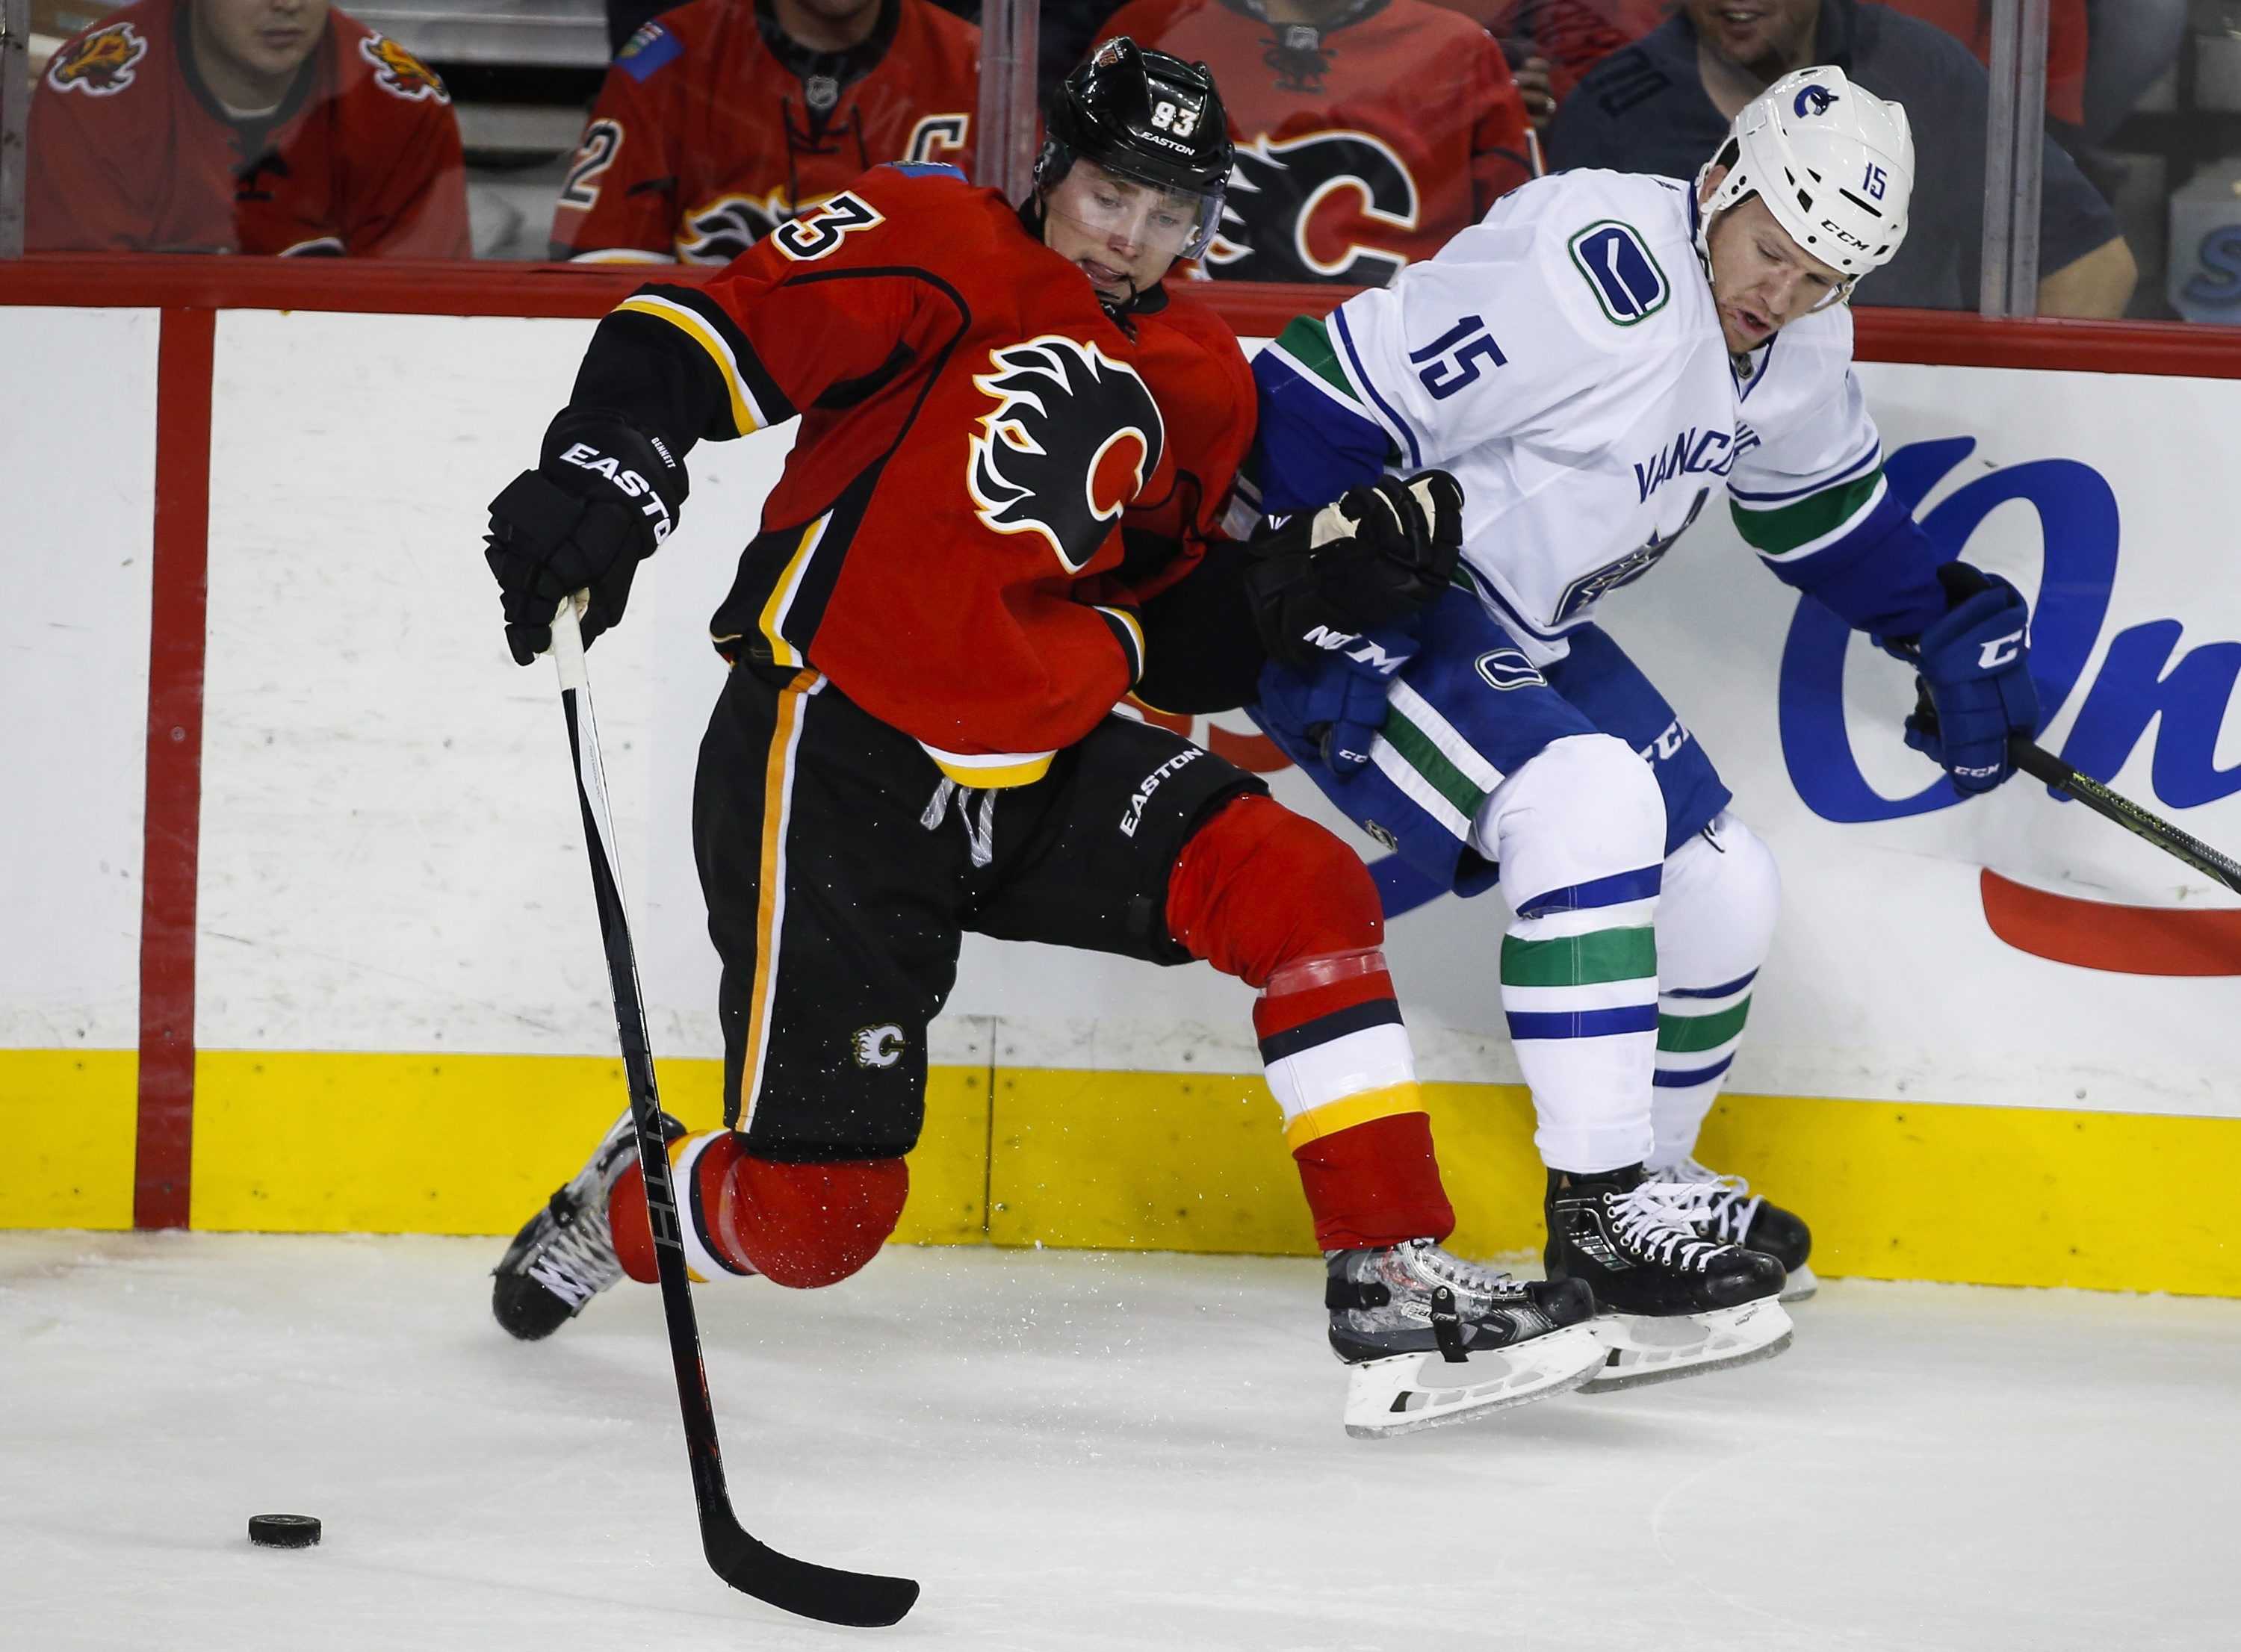 Vancouver Canucks Derek Dorsett, right, and Calgary Flames Sam Bennett battle for the puck during the second period of an NHL hockey game in Calgary, Alberta, Wednesday, Oct. 7, 2015. (Jeff McIntosh/The Canadian Press via AP) MANDATORY CREDIT